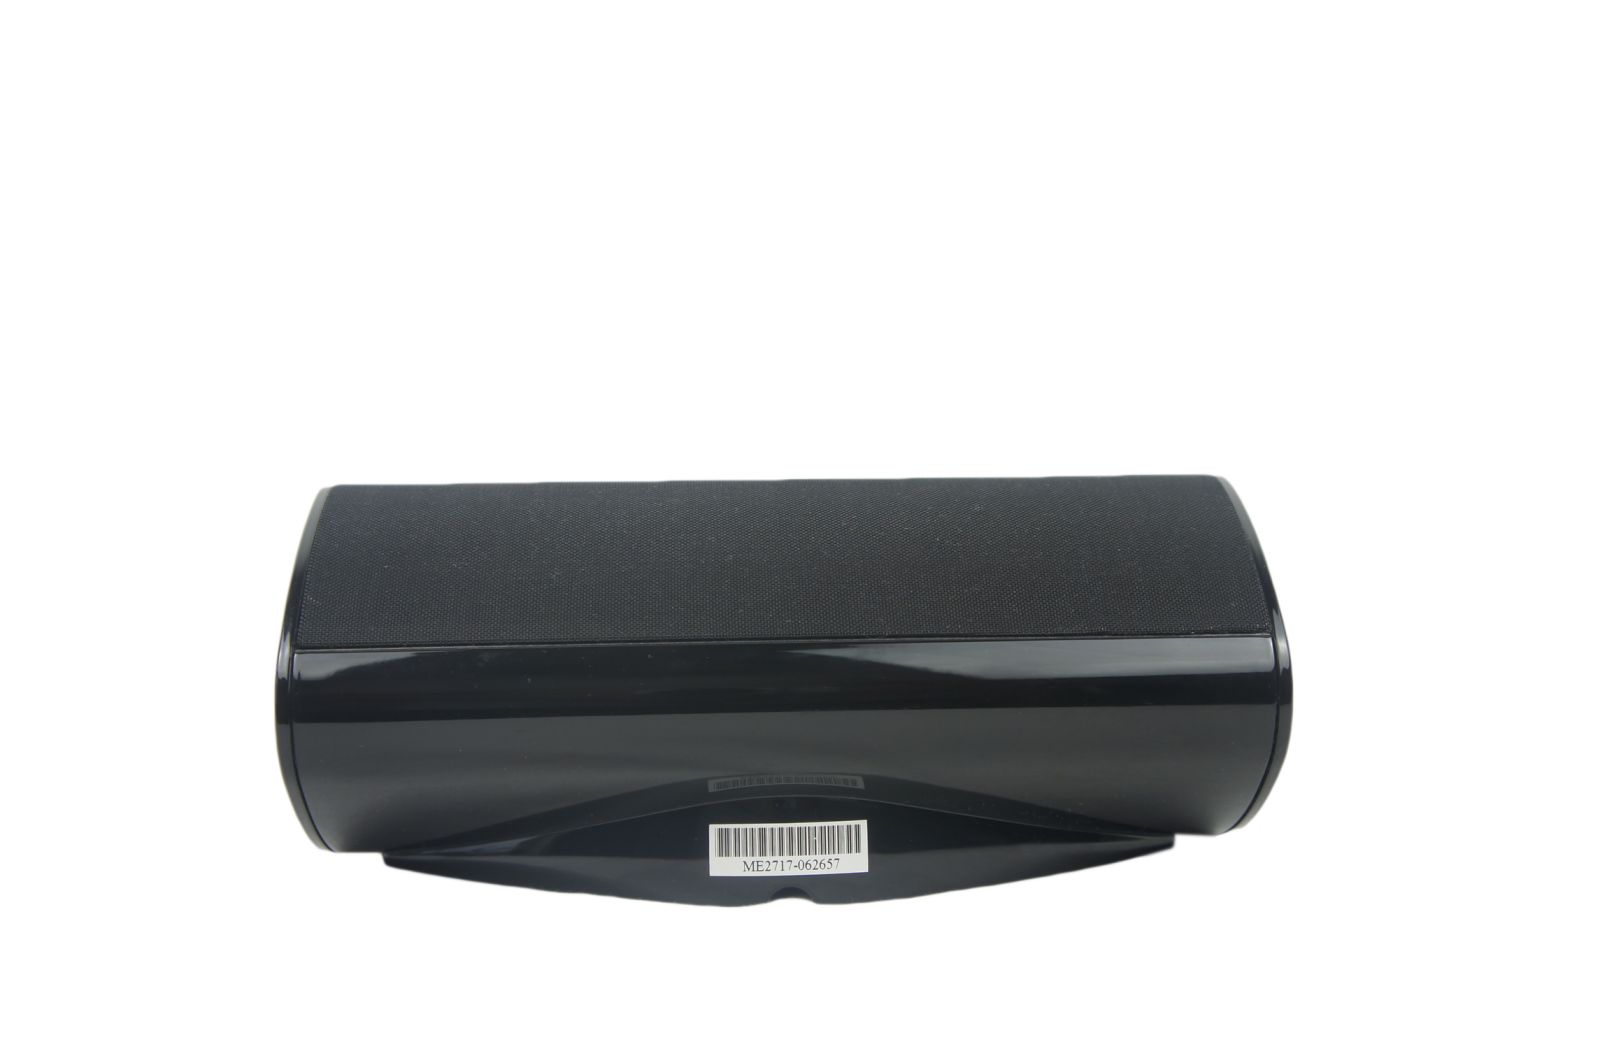 Harman_Kardon_CEN-TS7BQ_Center_Lautsprecher_Box_04